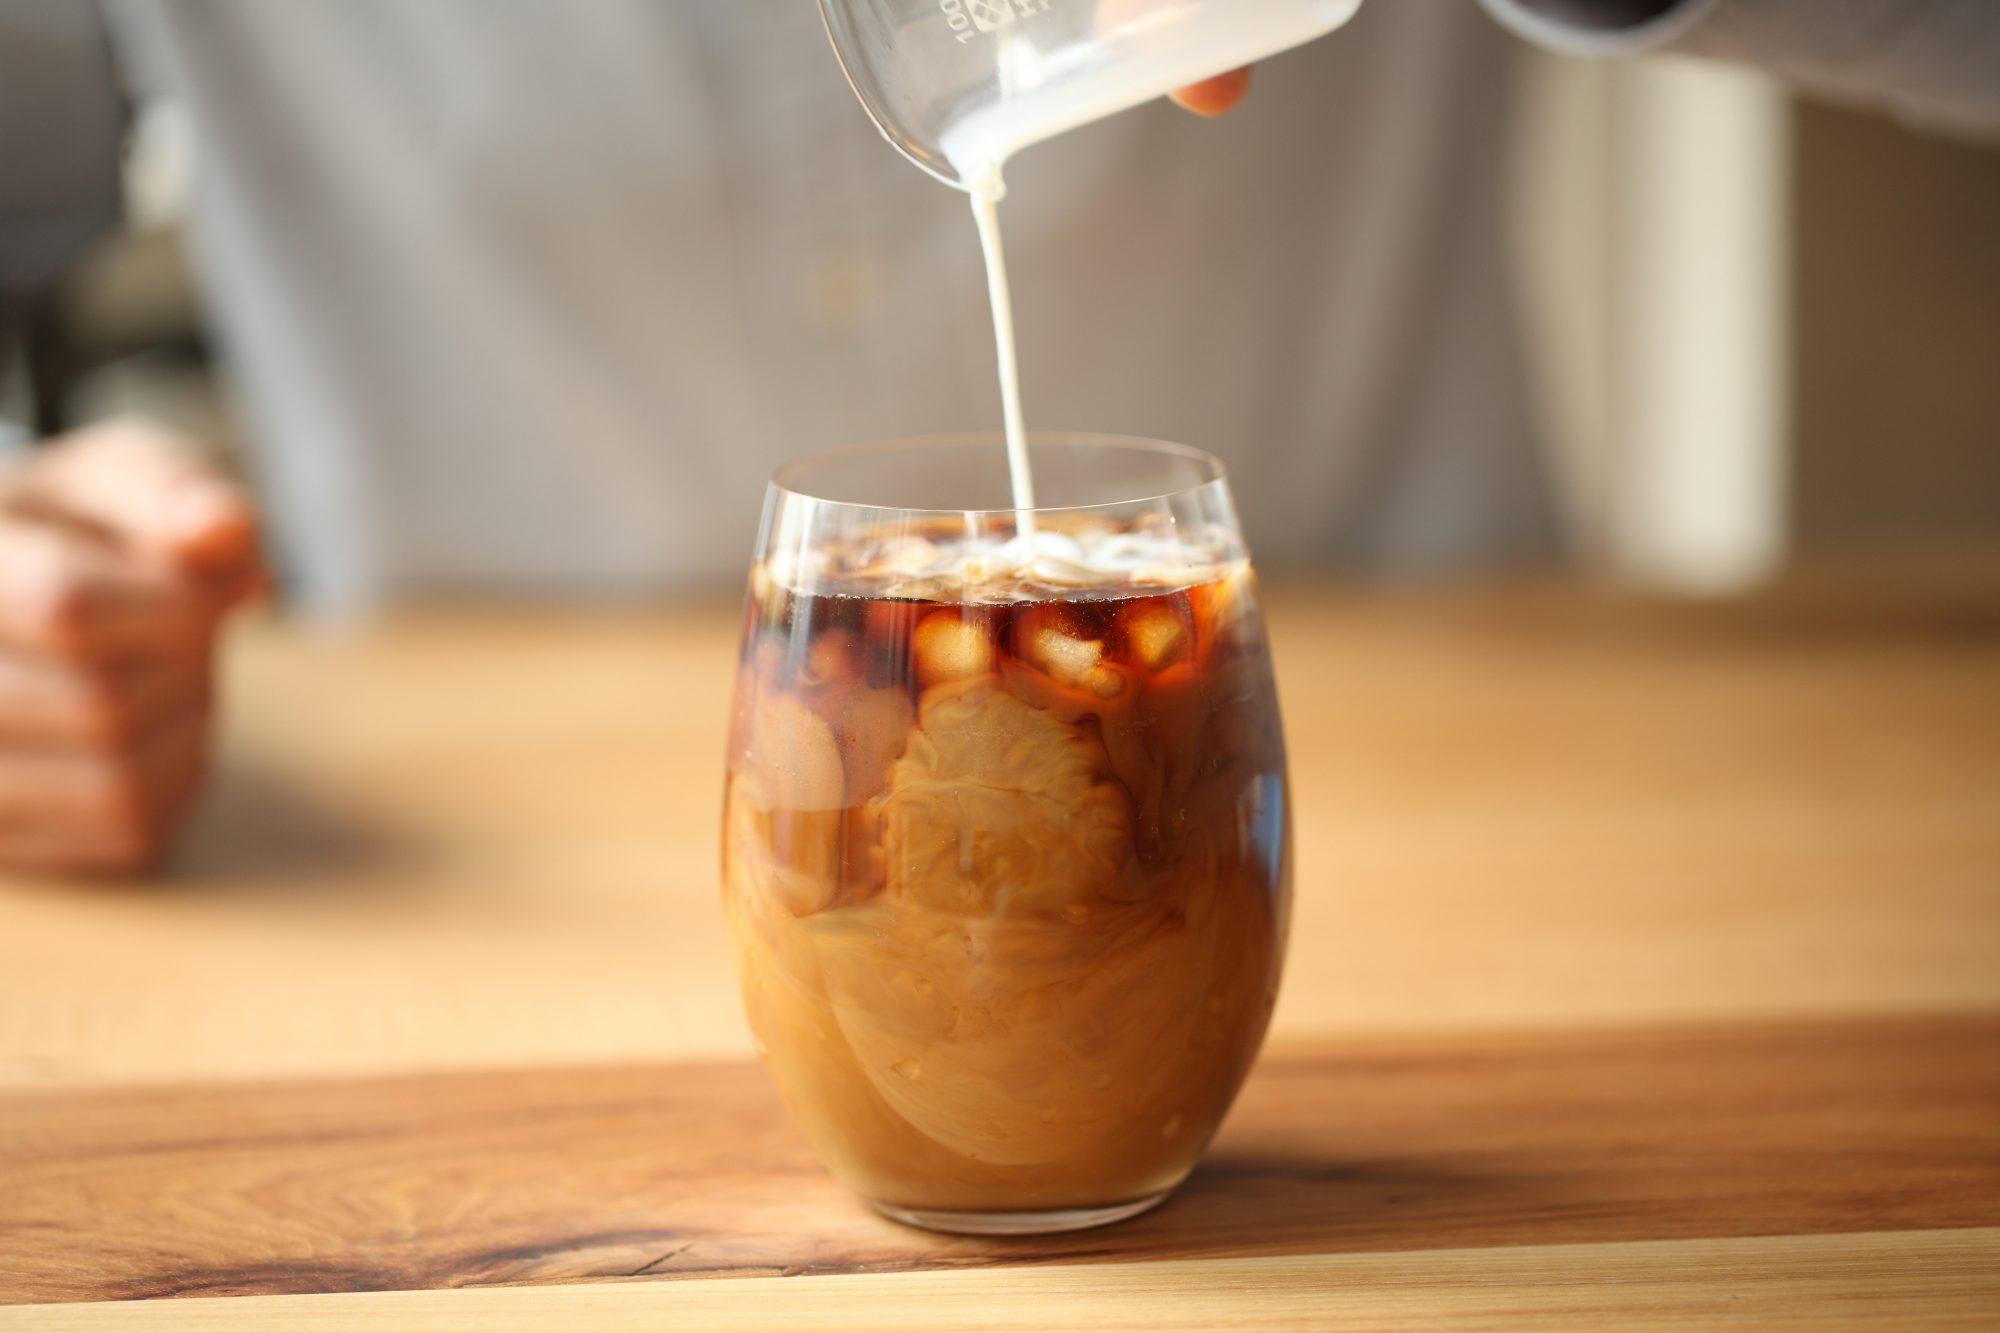 How to Make Your Own Flavored Coffee Creamer